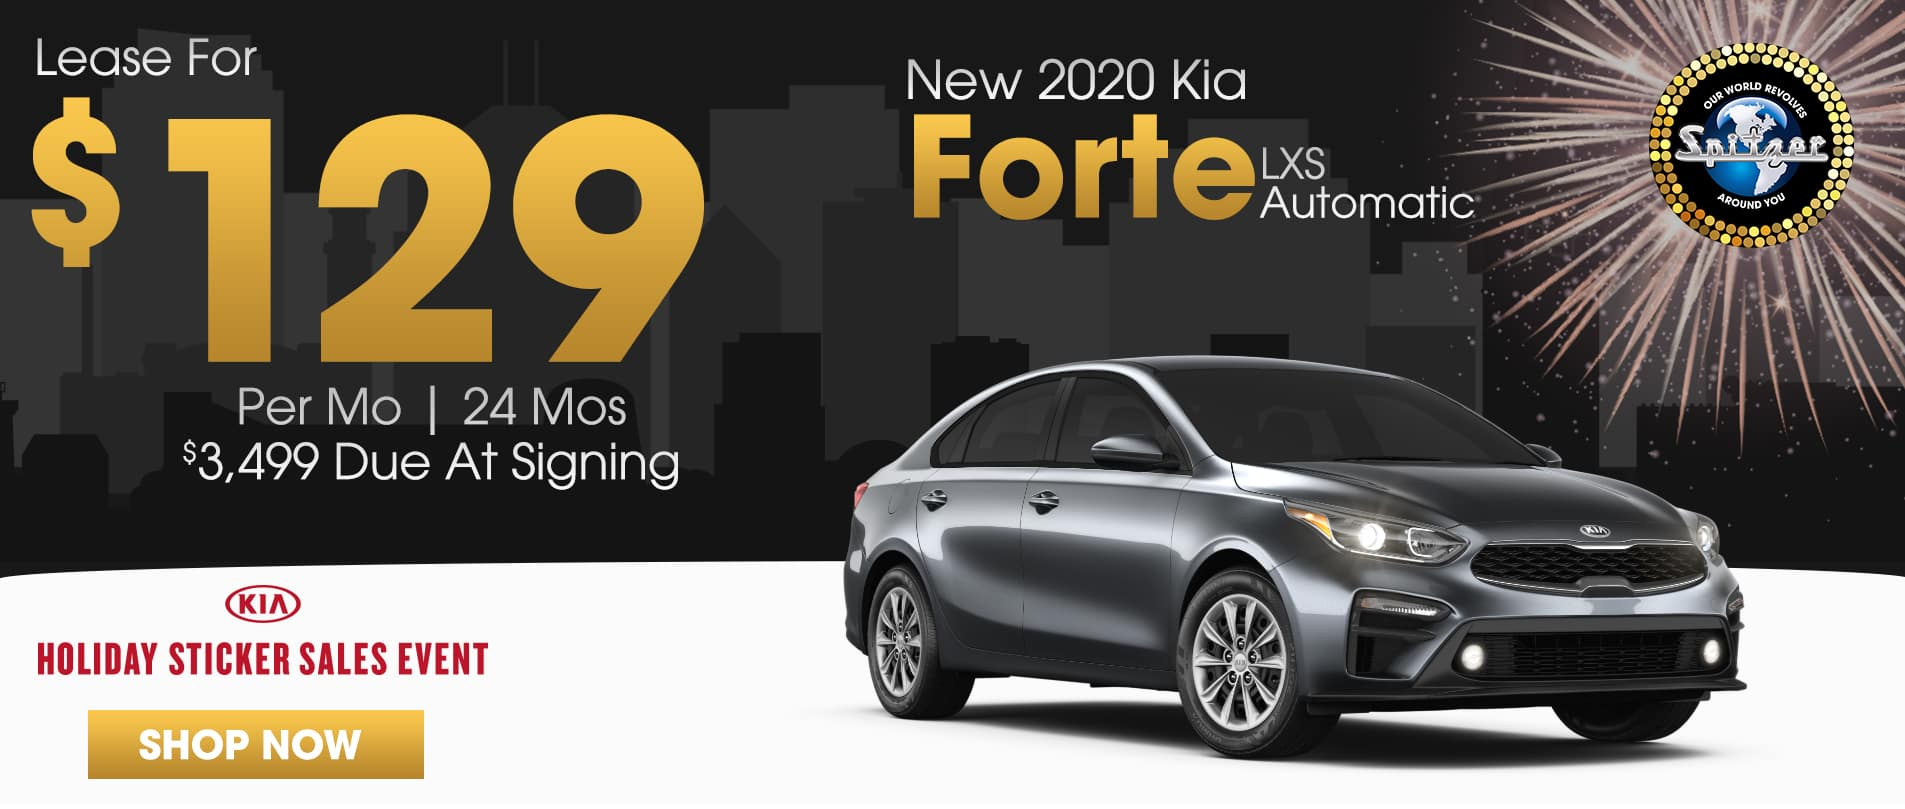 Forte   Lease for $129 per mo